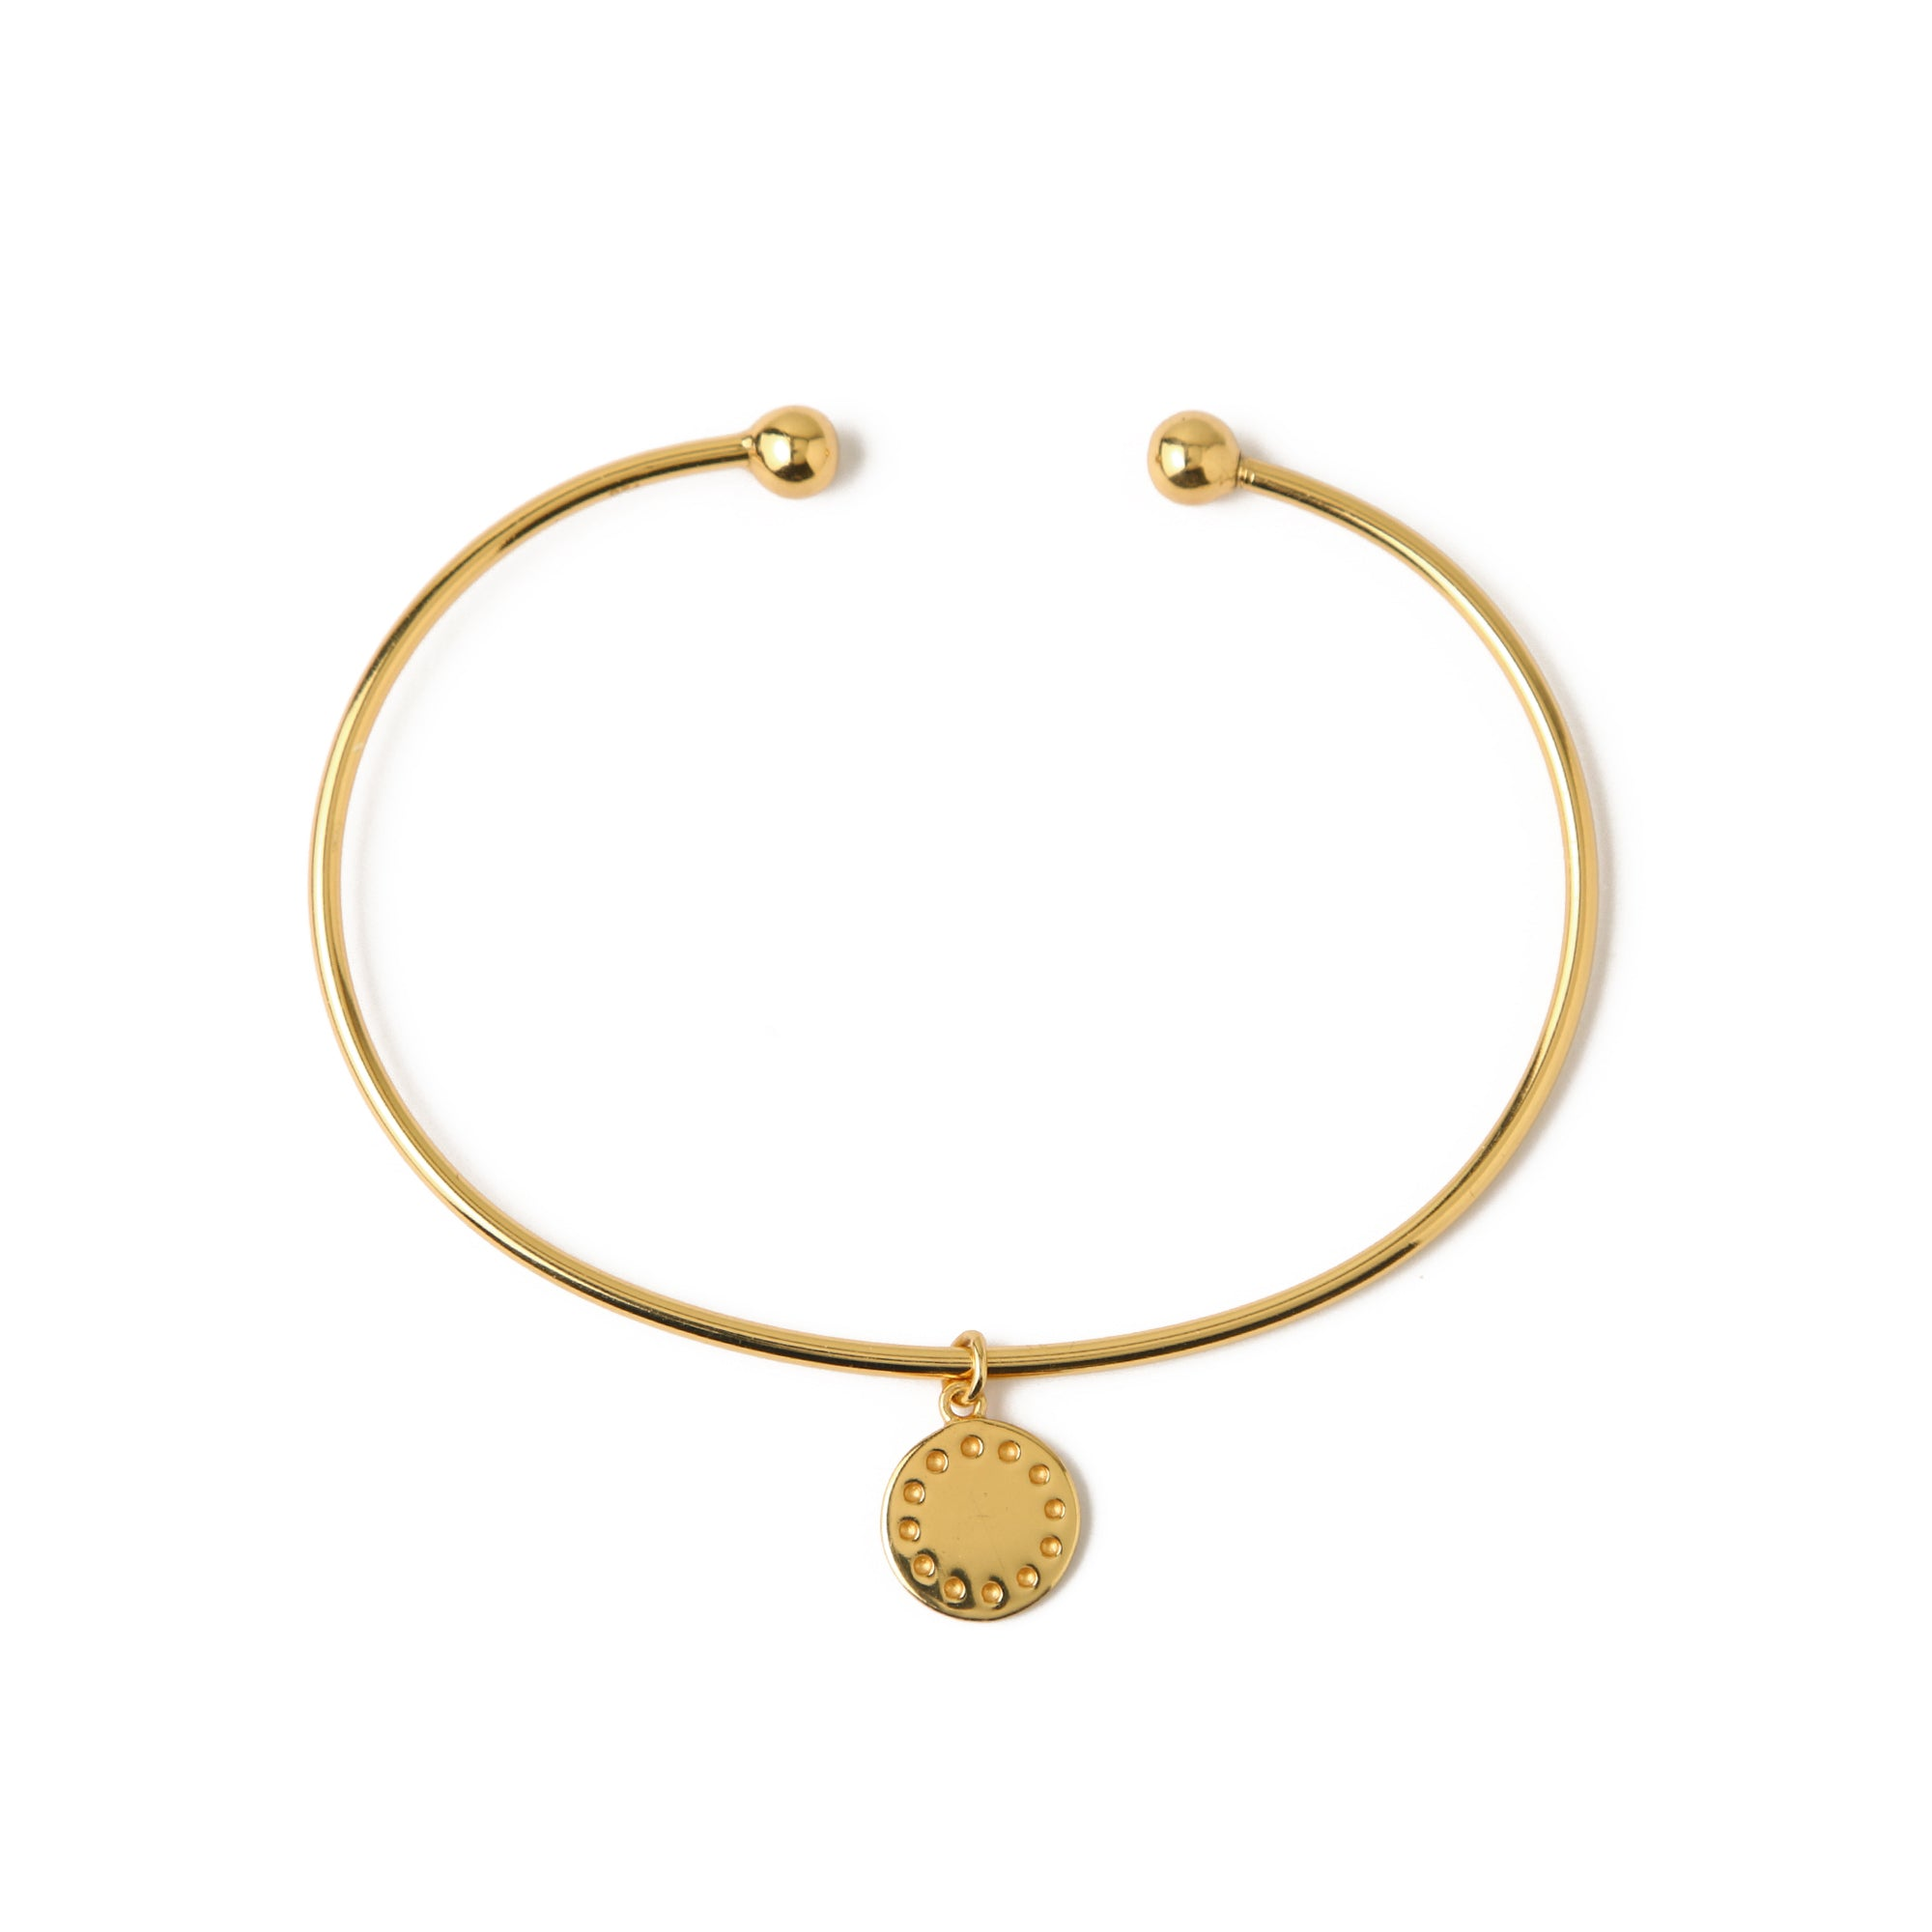 LUXE Coin Charm Bangle - Gold